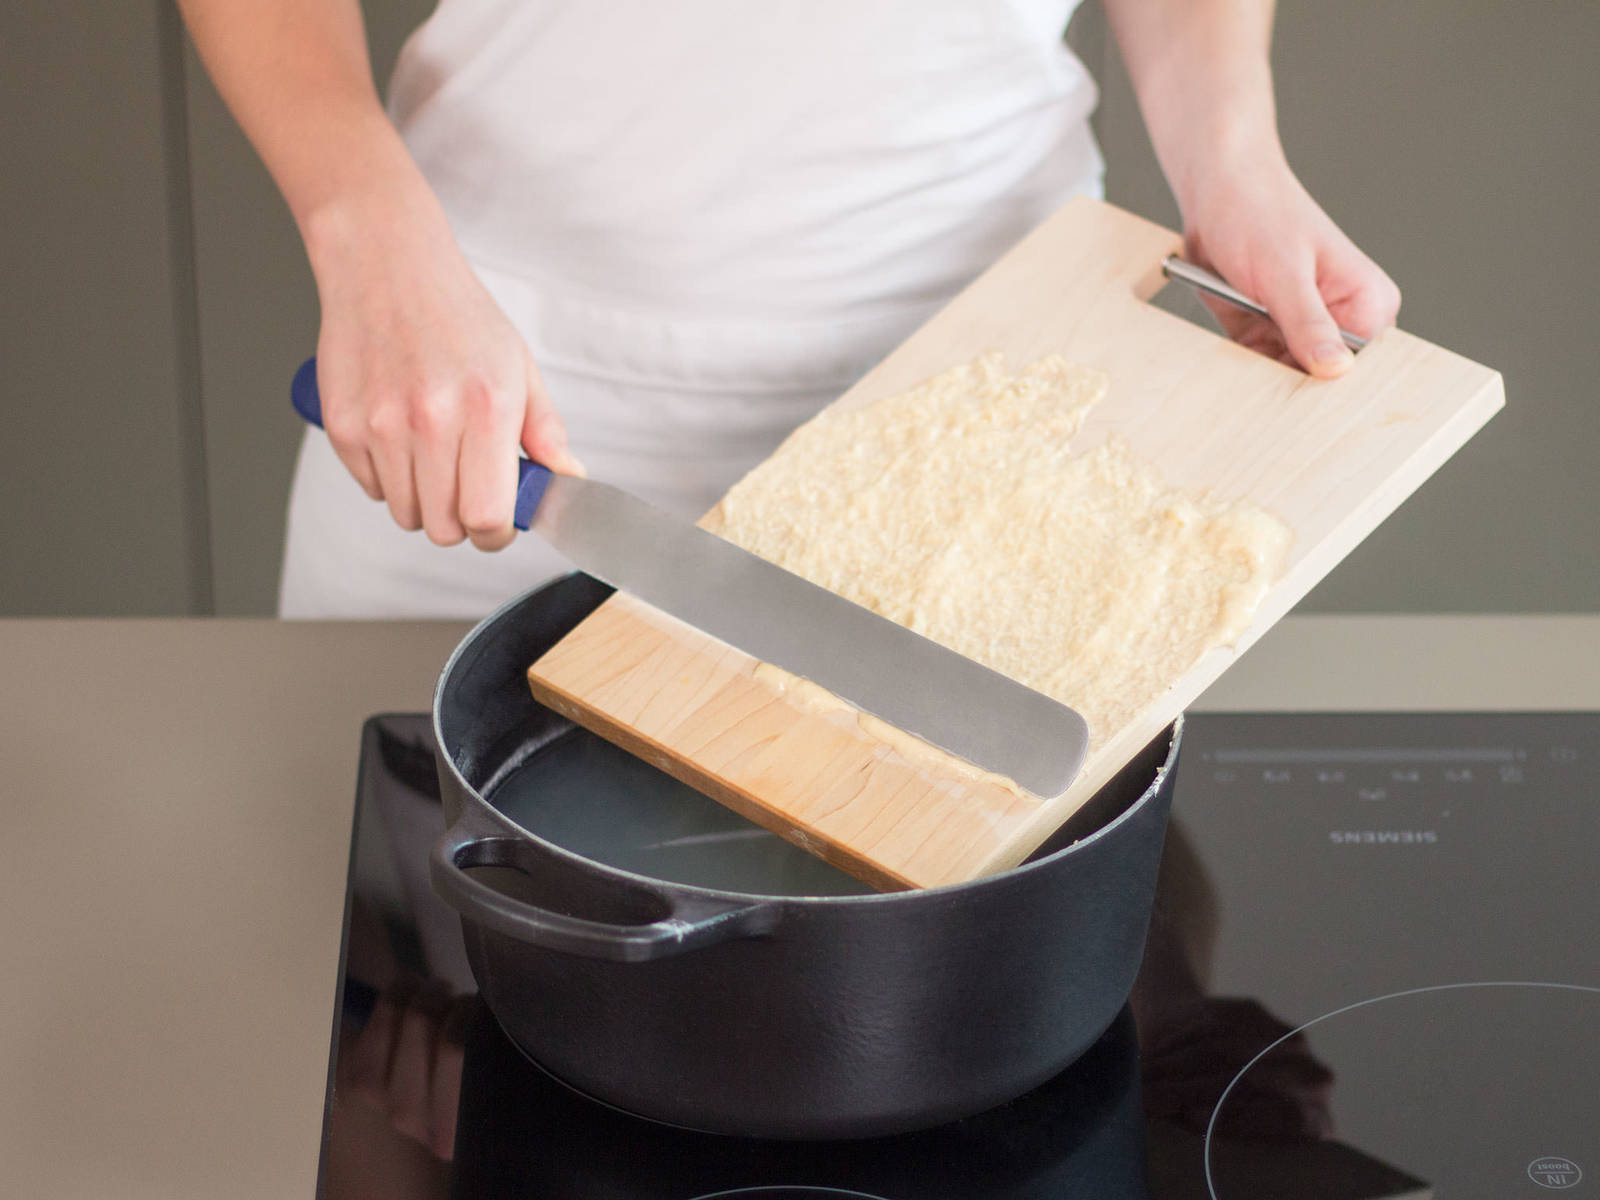 Fill a large saucepan half full with salted water and bring to a boil over medium-high heat. Next, wet cutting board with a little boiling water and then spread a thin, even layer of dough over a cutting board. Using a pastry spatula, shave off thin strips of dough, approx. the width of a pencil, into water. Cook for approx. 1 min. or until spätzle rises to the surface. Transfer to an ice bath for approx. 20 sec. to halt cooking process and then place in a colander to drain.